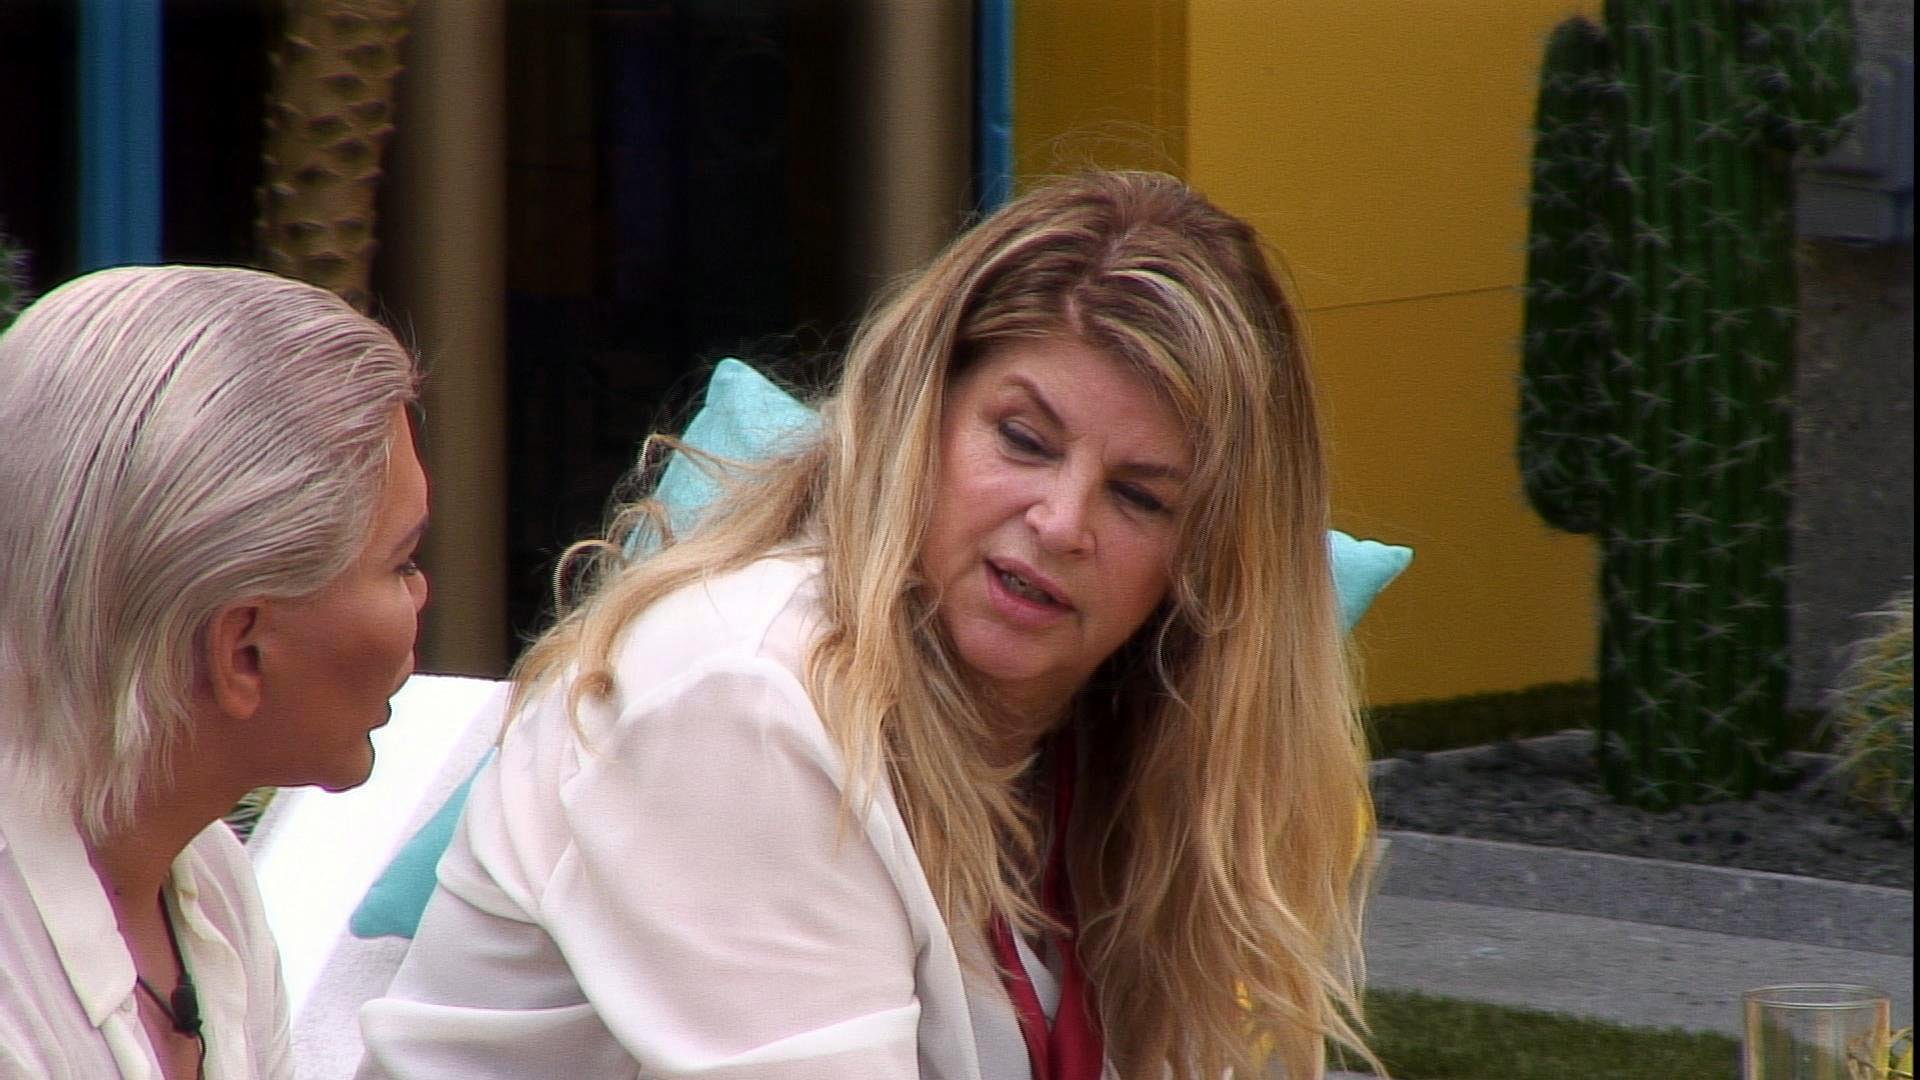 Celebrity Big Brother's Kirstie Alley refuses to discuss Scientology despite grilling from Rodrigo Alves: 'Read a book'